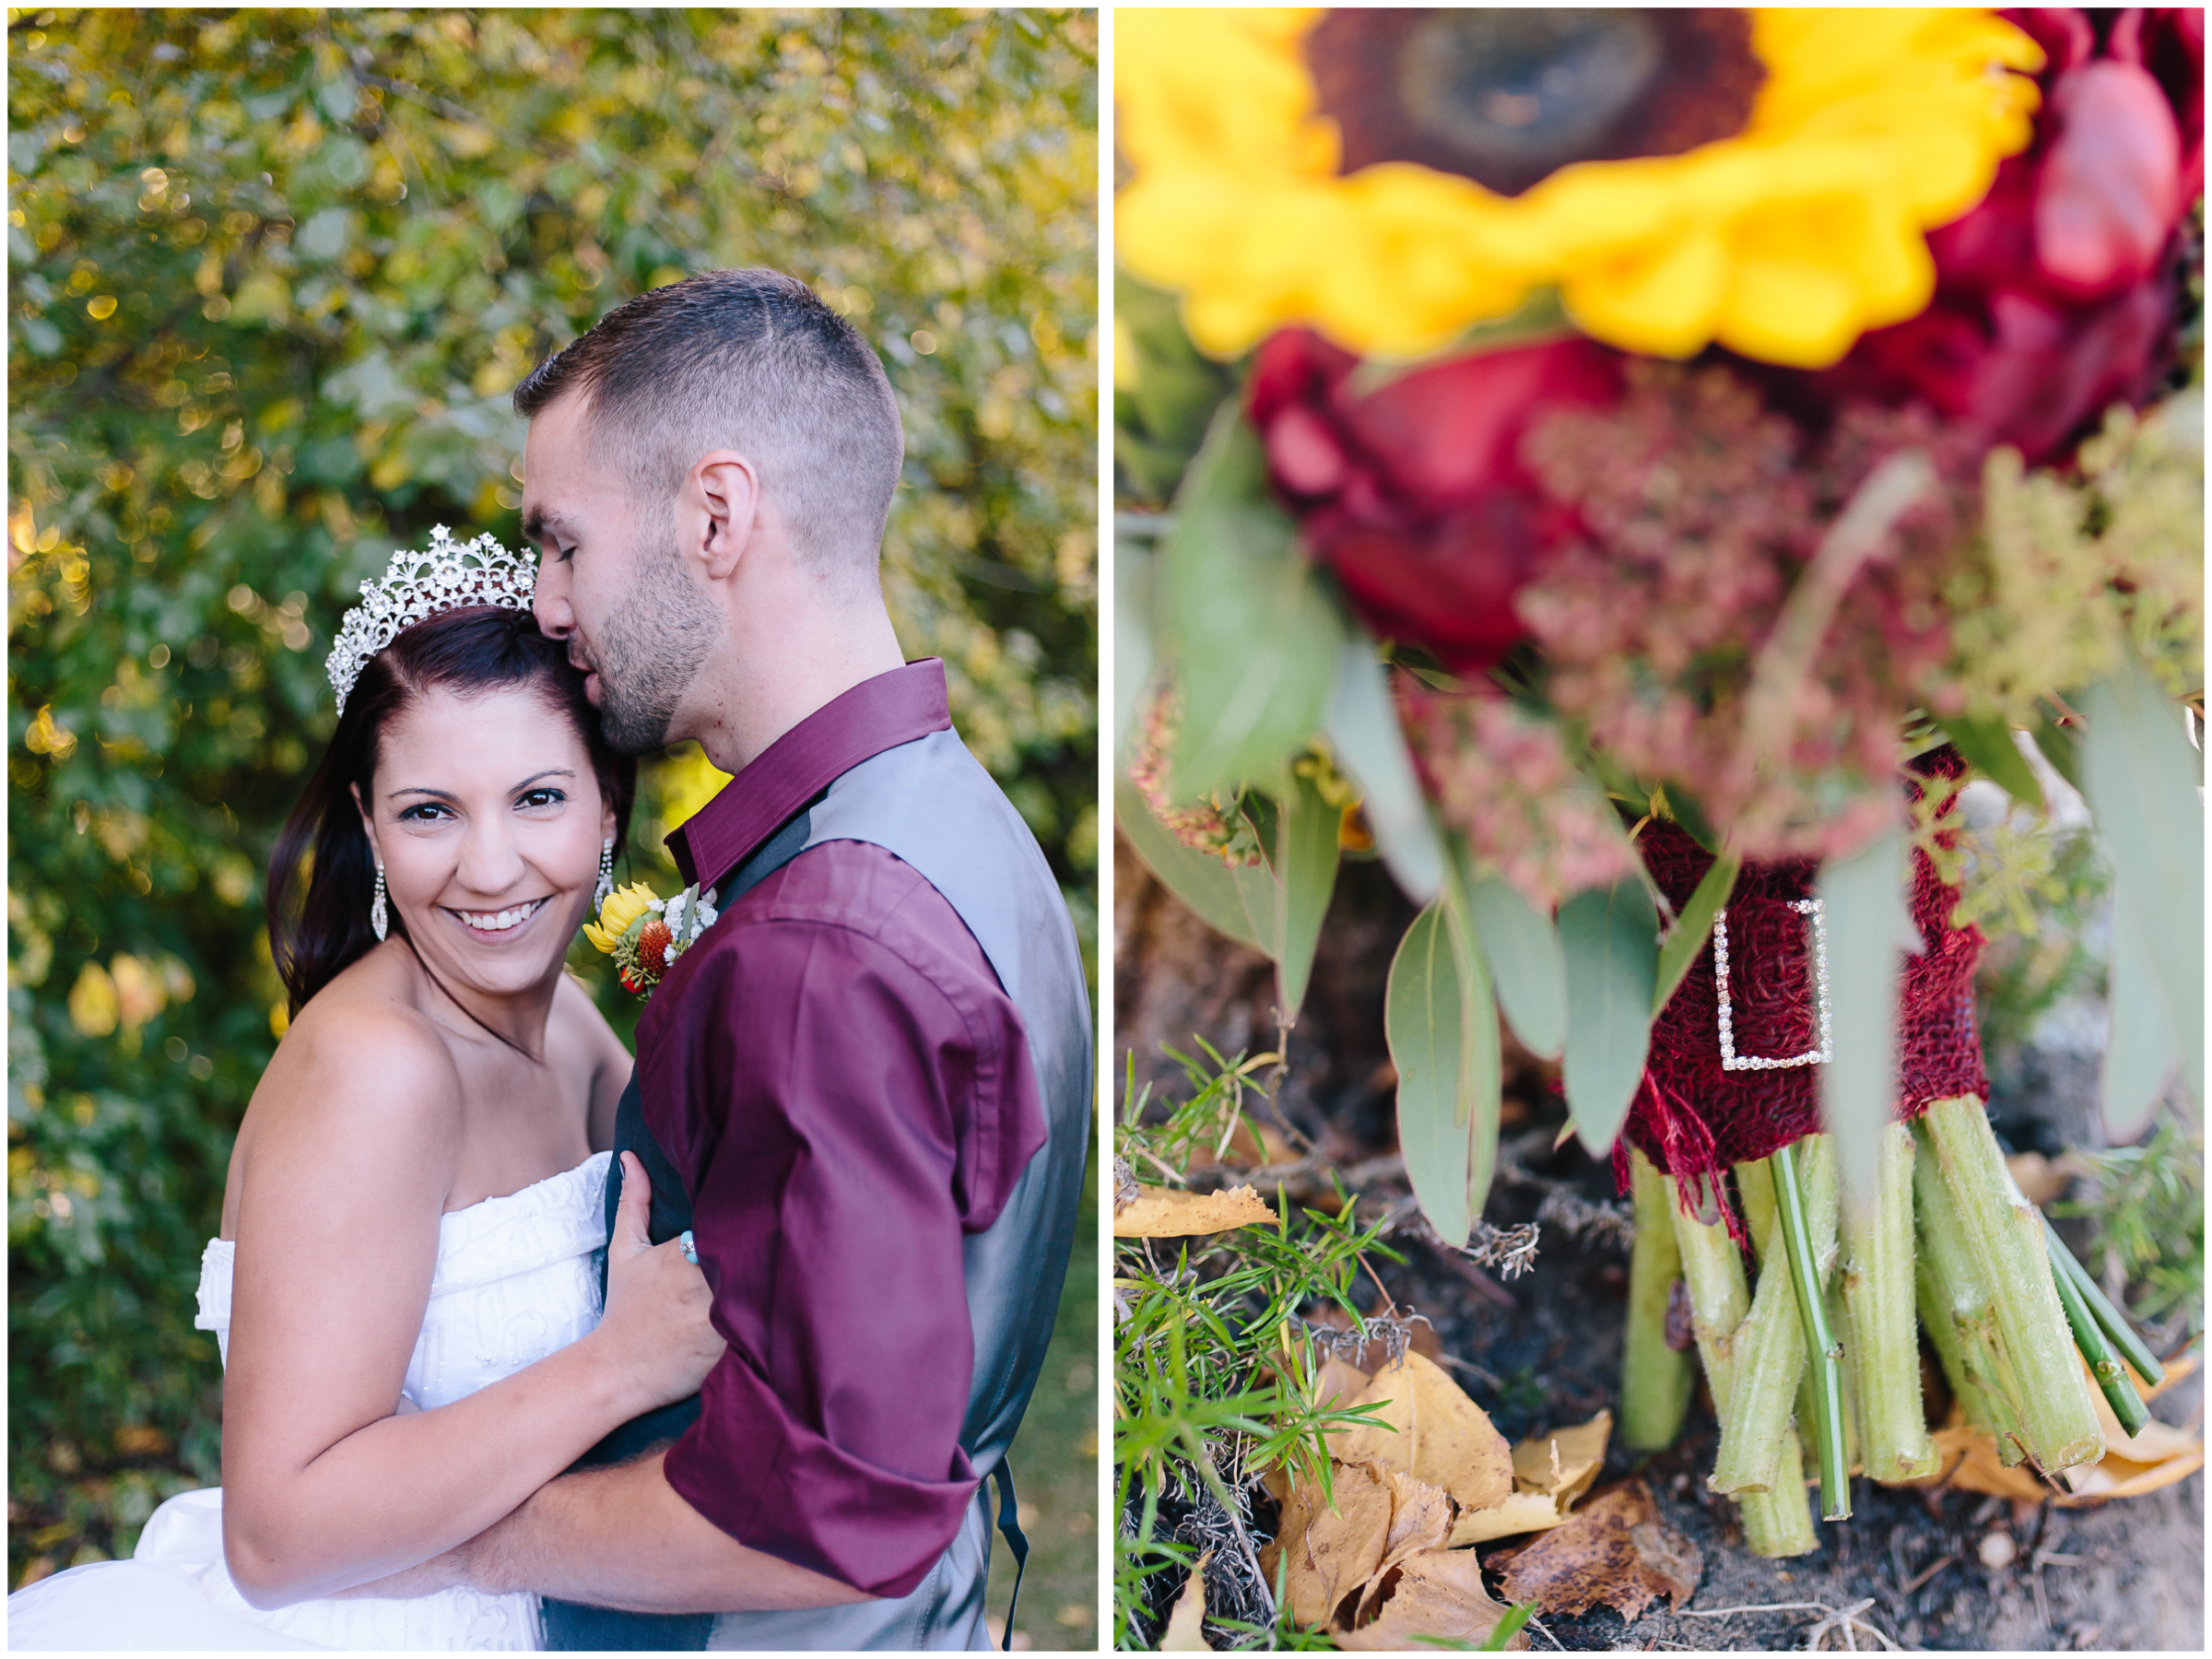 Ashleigh Laureen Photography Journalistic Fall Wedding in Hooksett, New Hampshire, Bride and Groom and Flower Bouquet